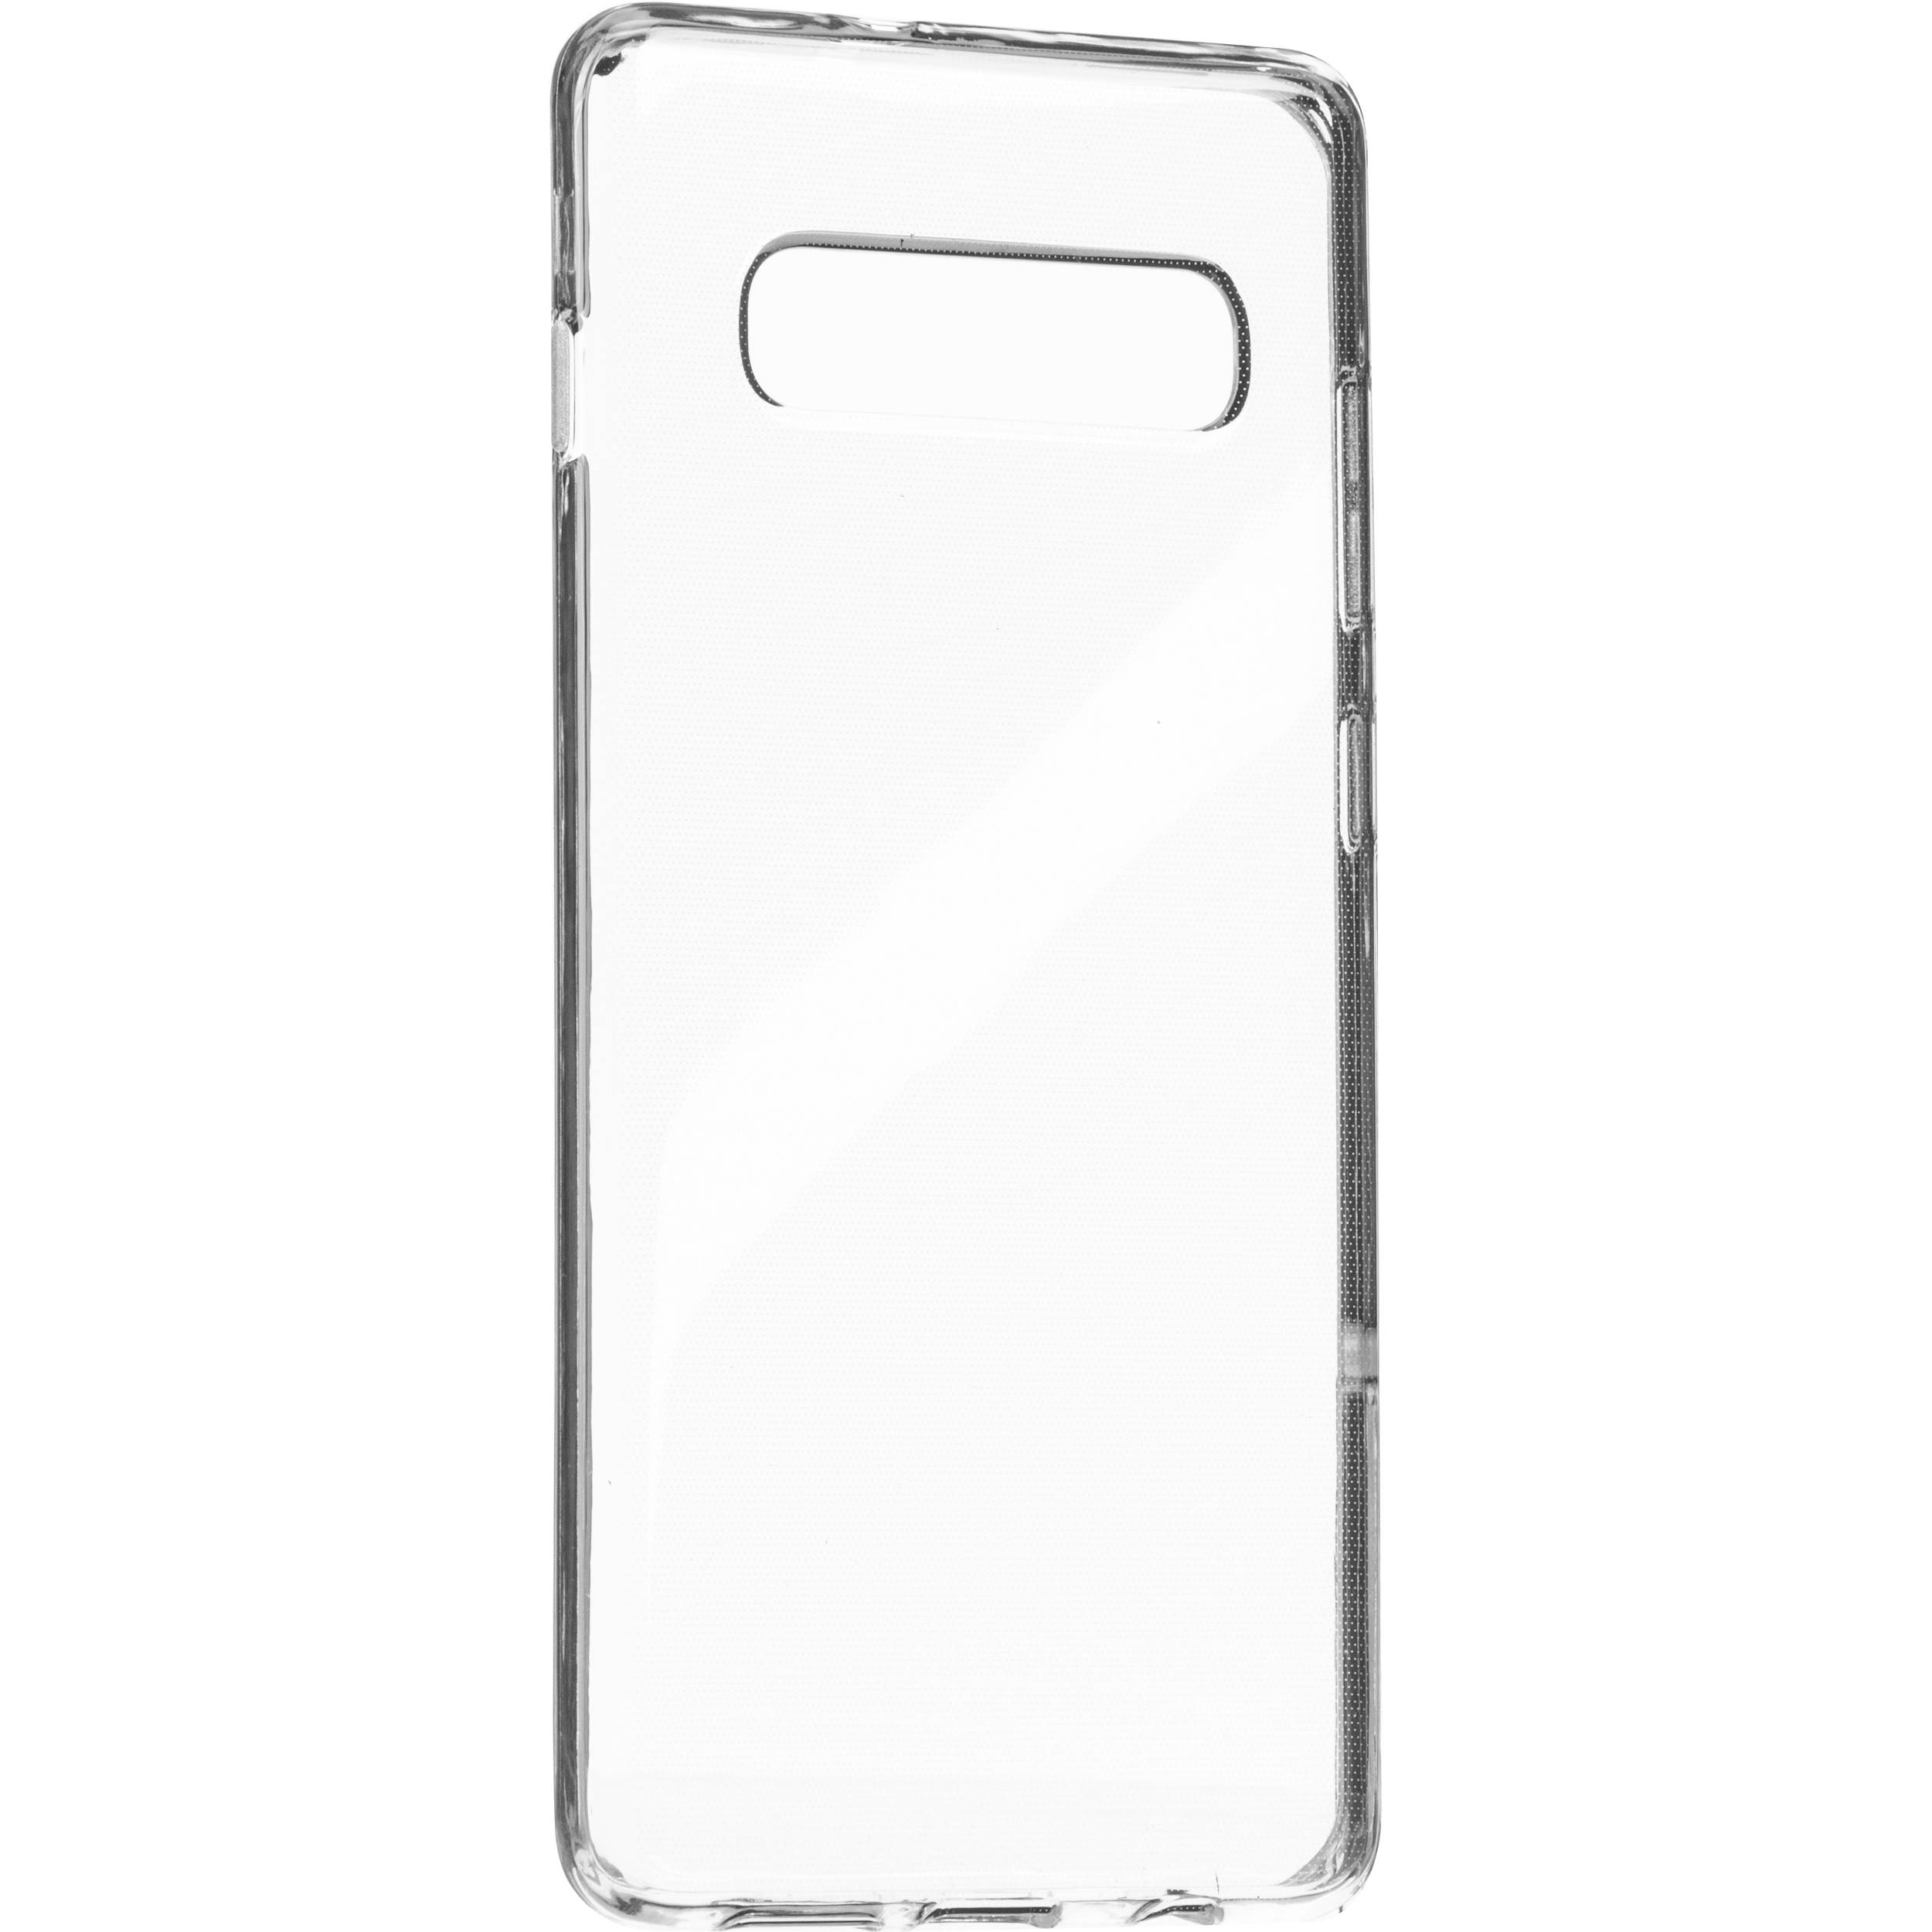 100% authentic 6b8a4 91e29 AVODA TPU Case for Samsung Galaxy S10+ (Clear)